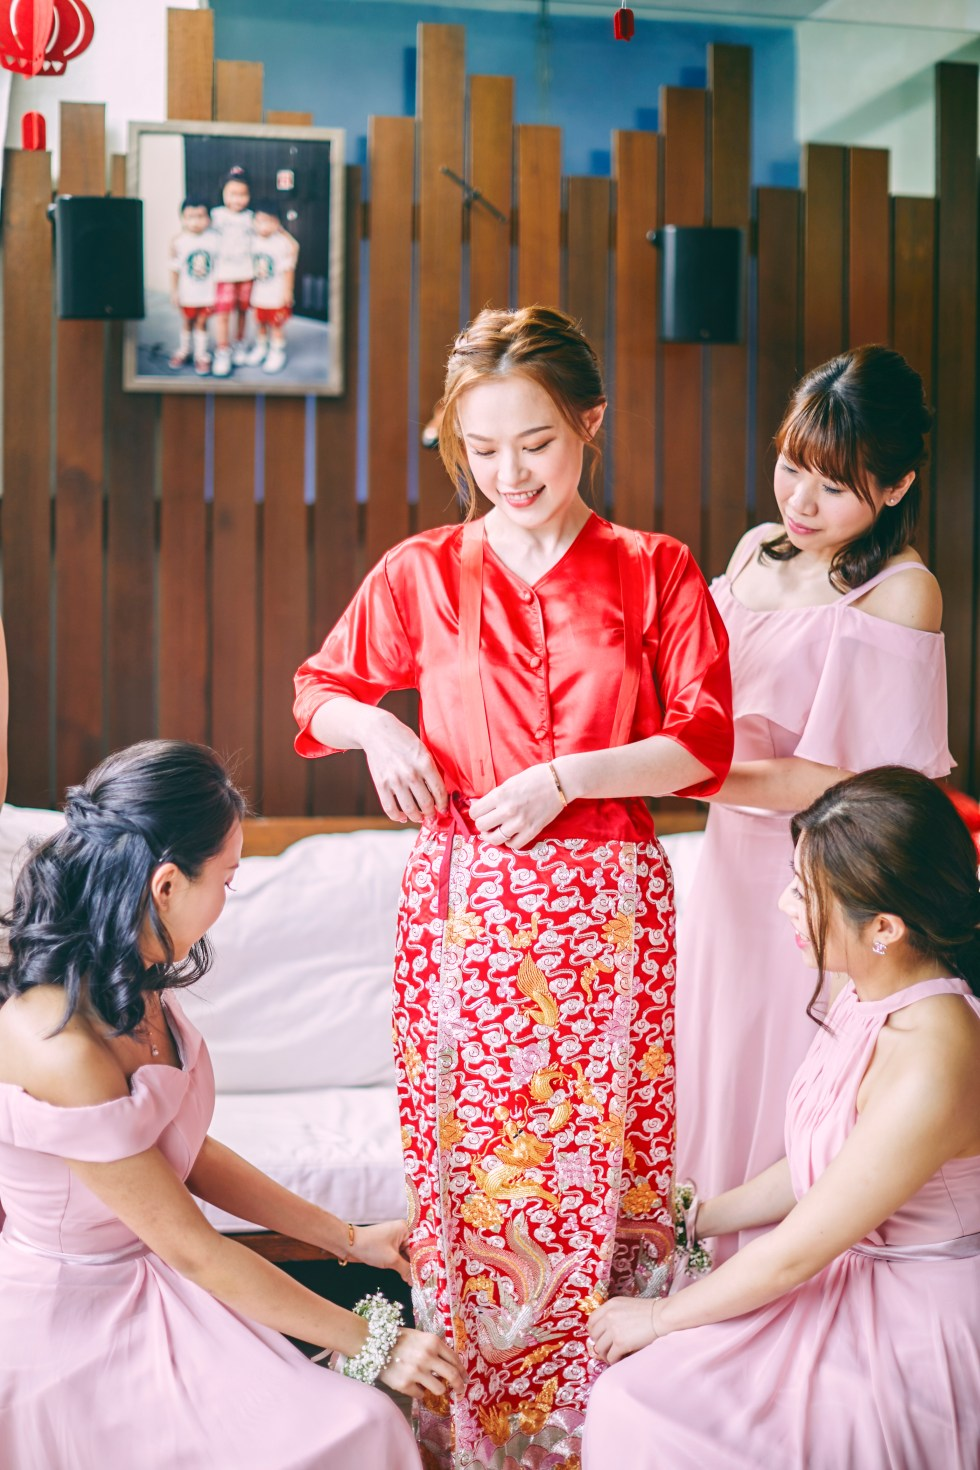 Tiffany and Jerry zOO Hong Kong Wedding Day photography 婚攝